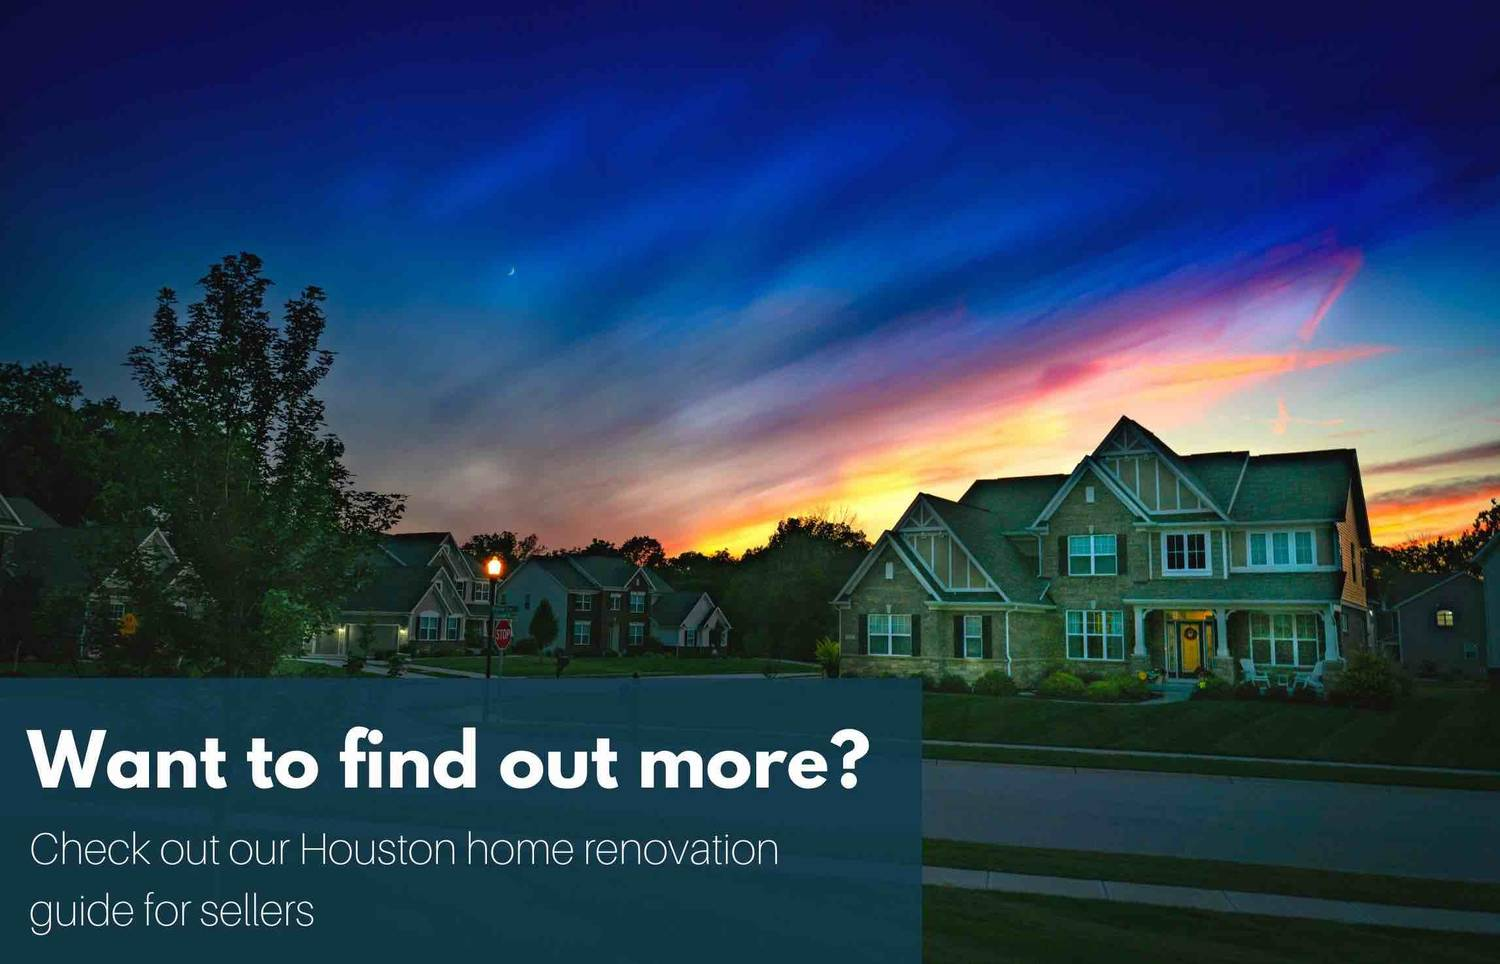 The Ultimate Home Renovation Guide: How To Get Top Dollar For Your Houston Home